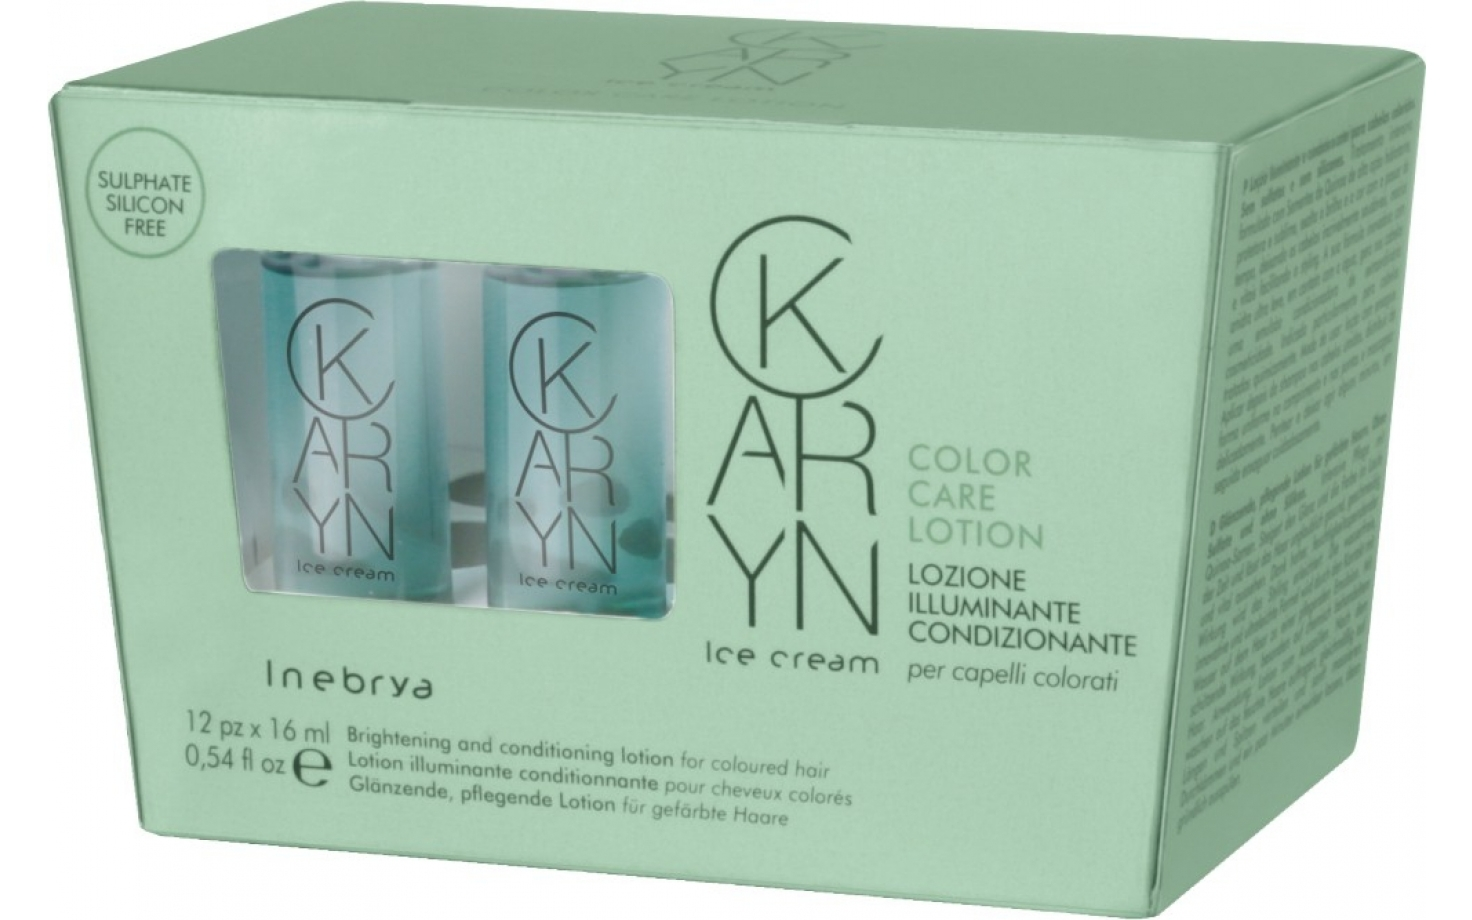 Ice Cream Karyn Color Care Lotion 12x16ml